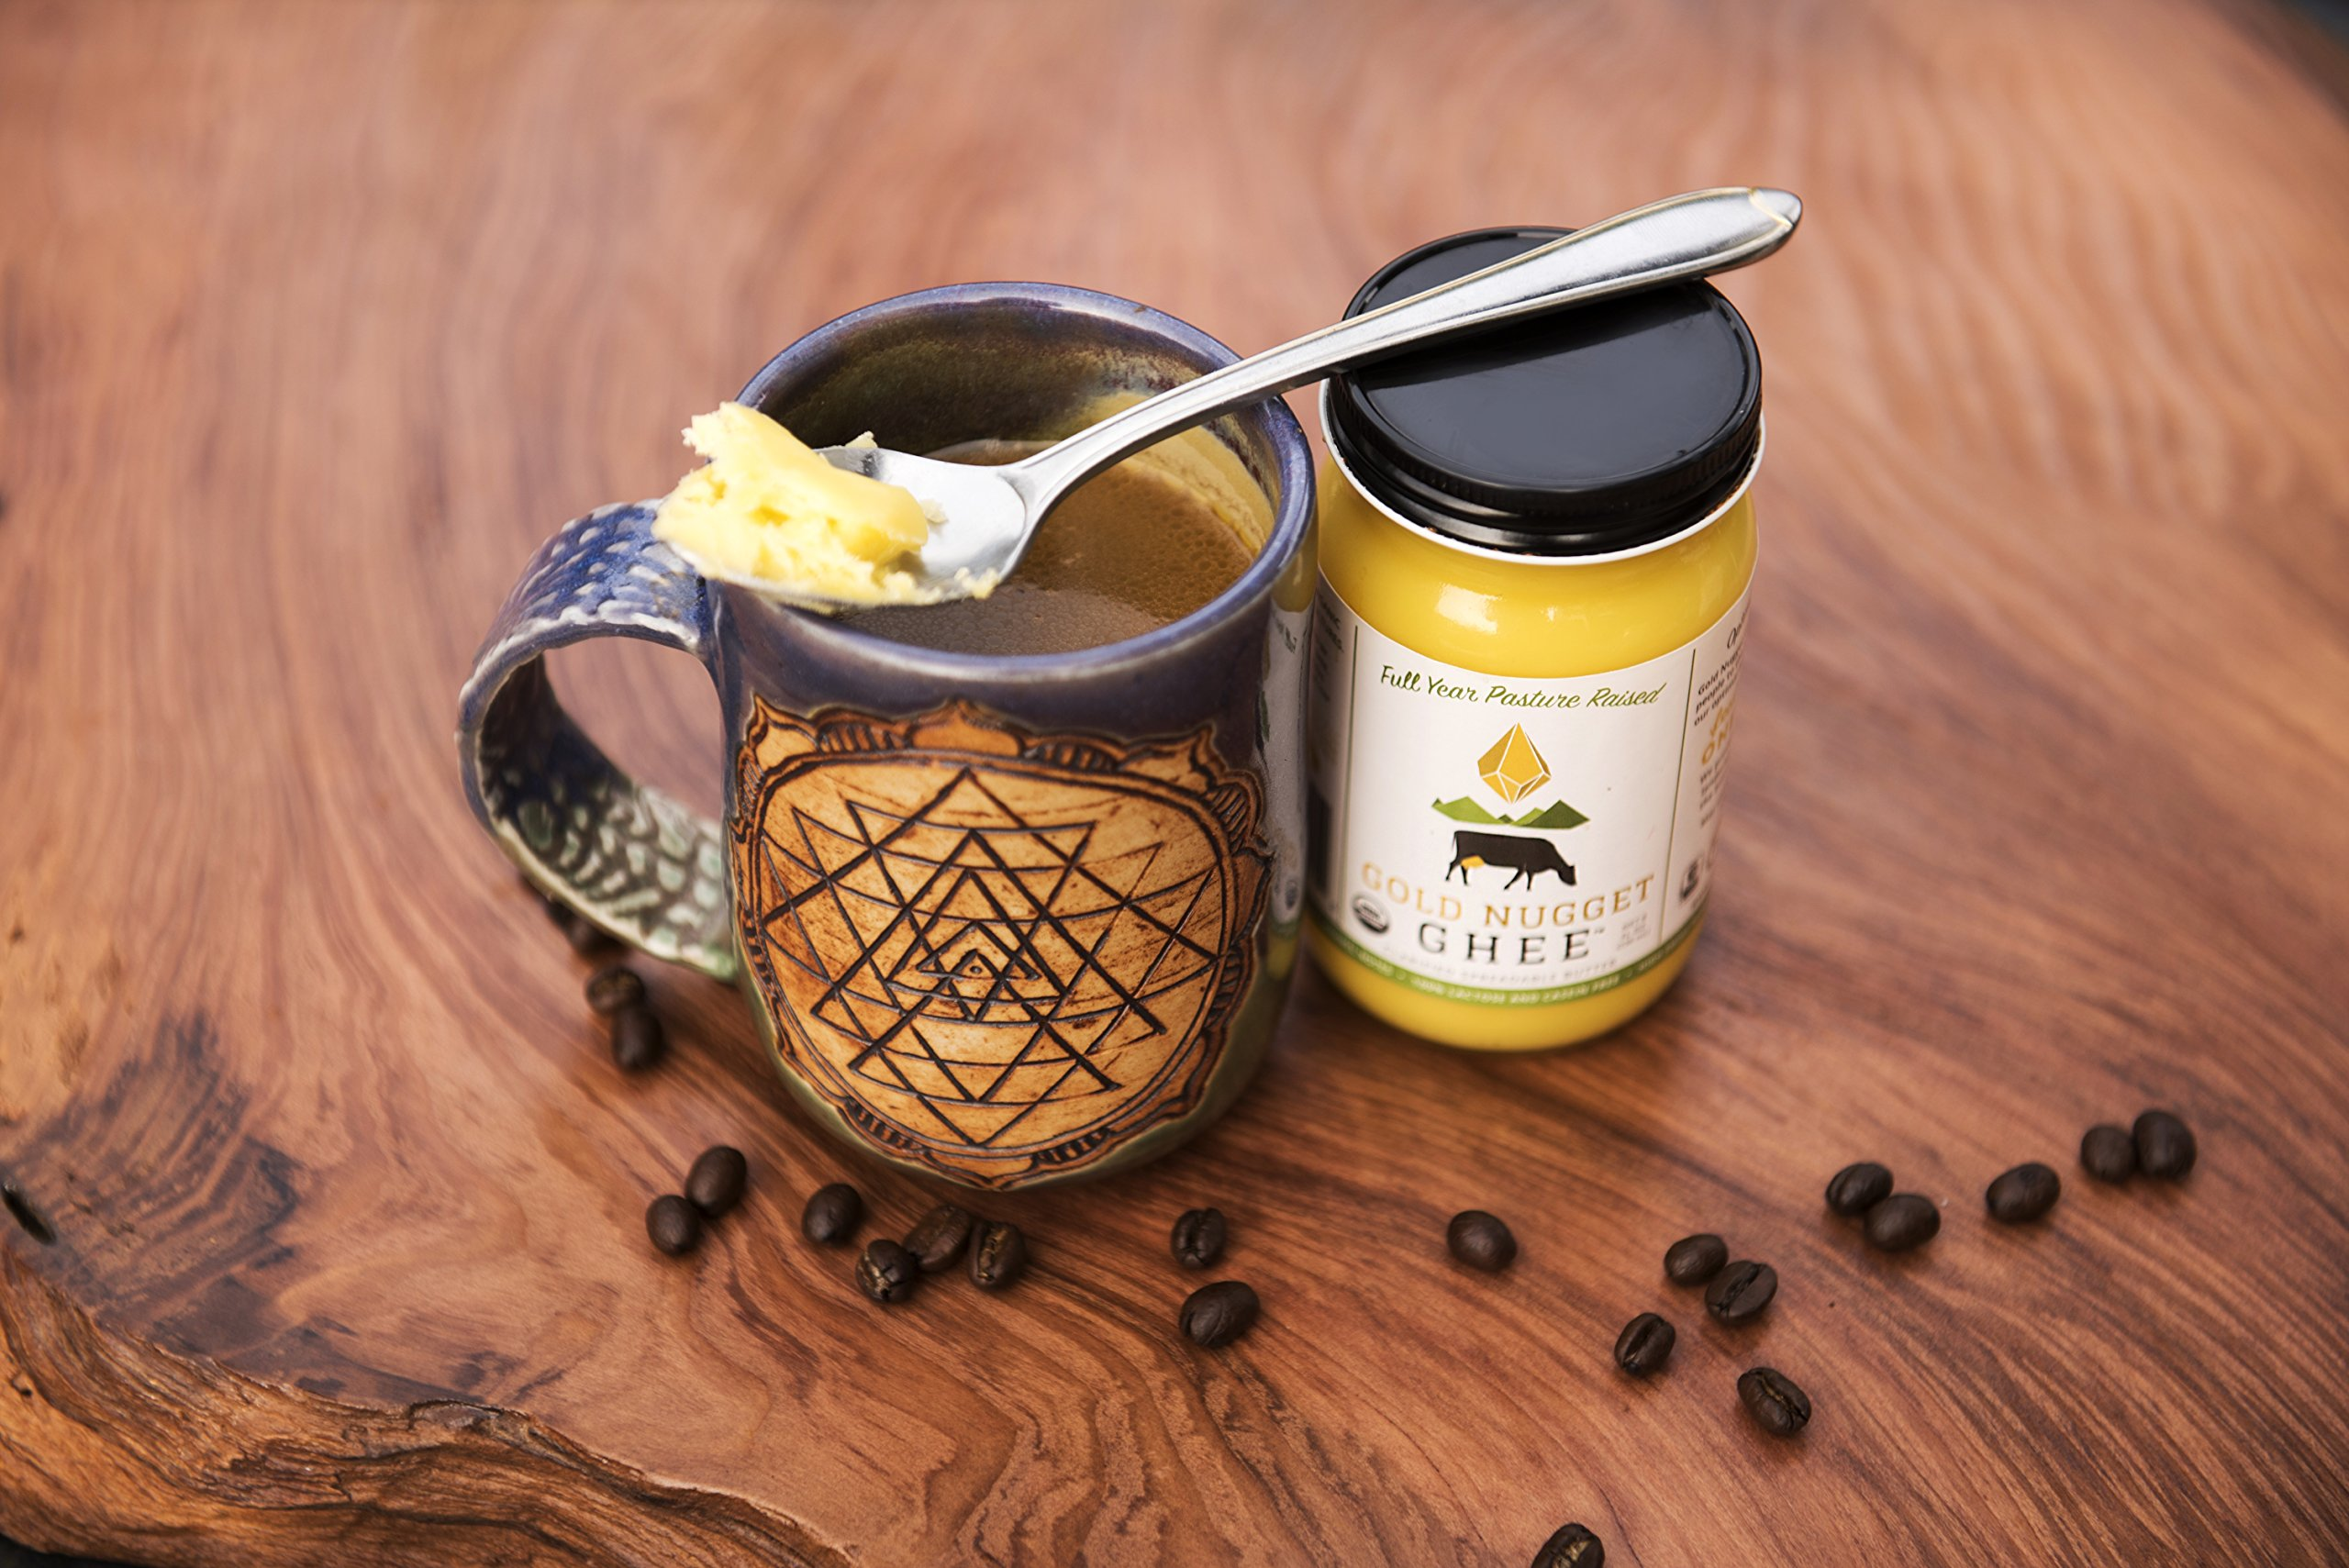 TRADITIONAL GHEE BY GOLD NUGGET GHEE USDA ORGANIC FULL YEAR PASTURE RAISED GRASS-FED BUTTER (16oz) by Gold Nugget Ghee (Image #4)